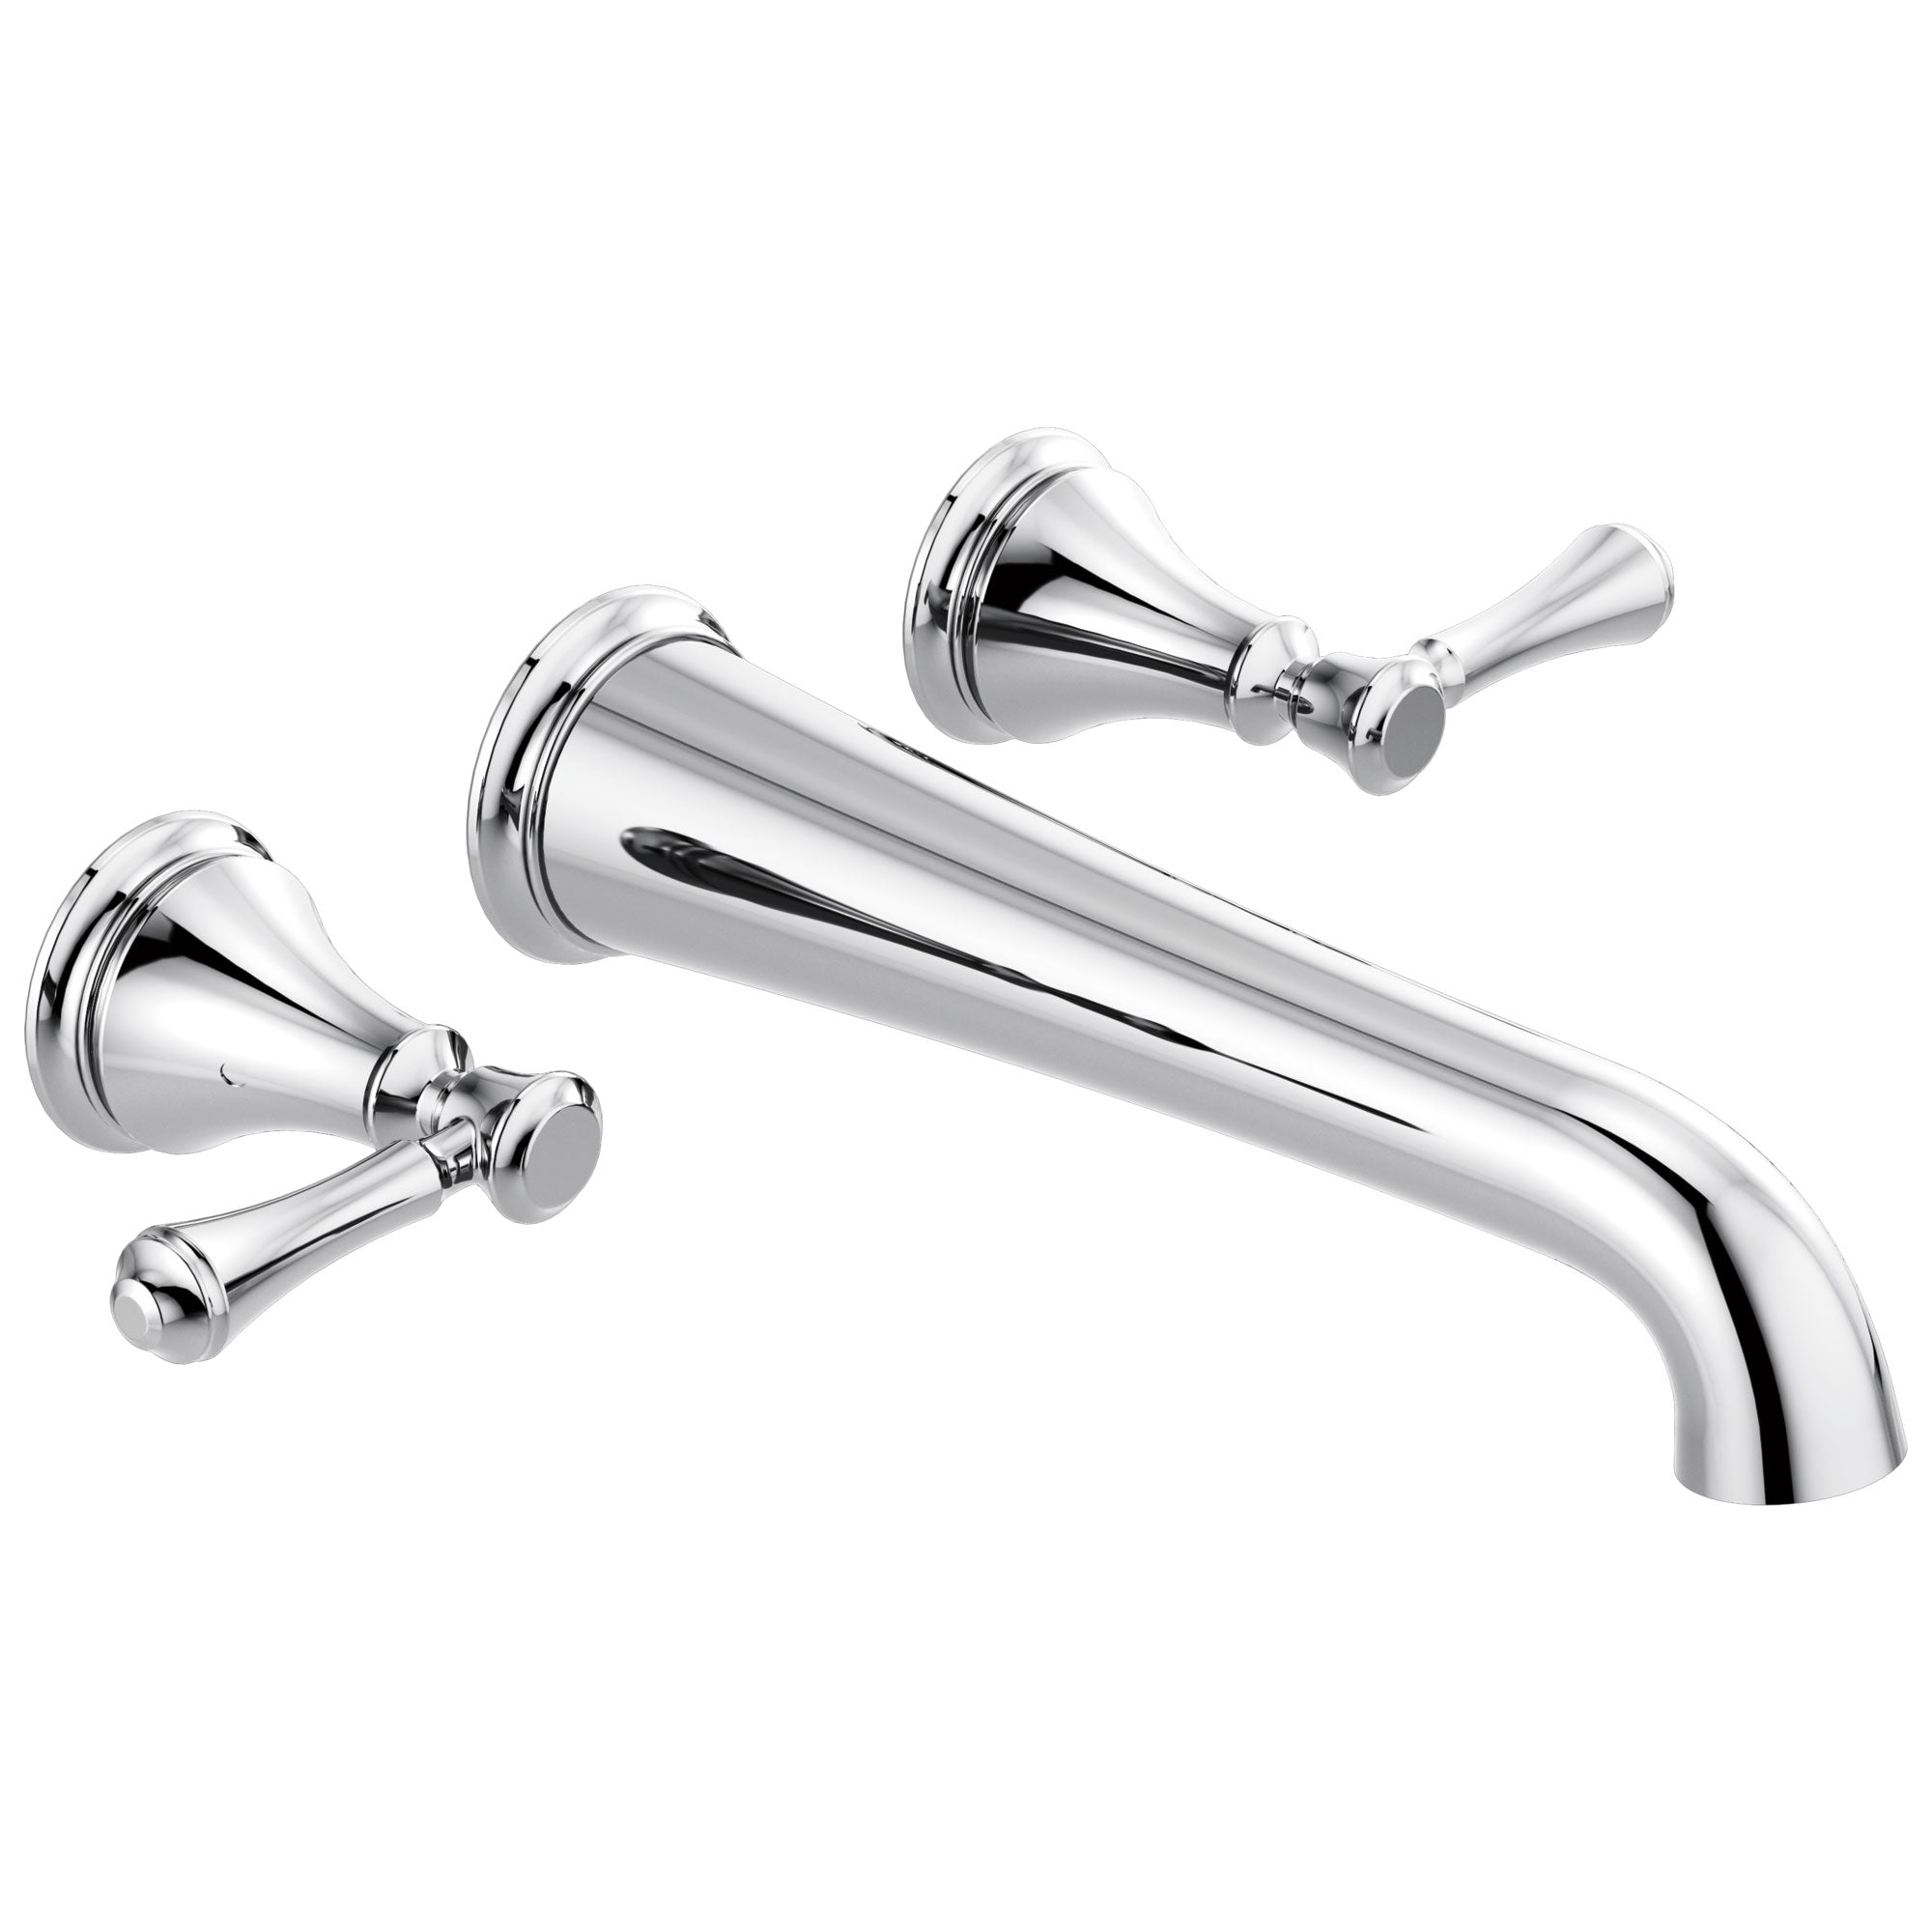 Delta Cassidy Chrome Finish 2 Handle Wall Mount Tub Filler Faucet Trim Kit (Requires Valve) DT5797WL